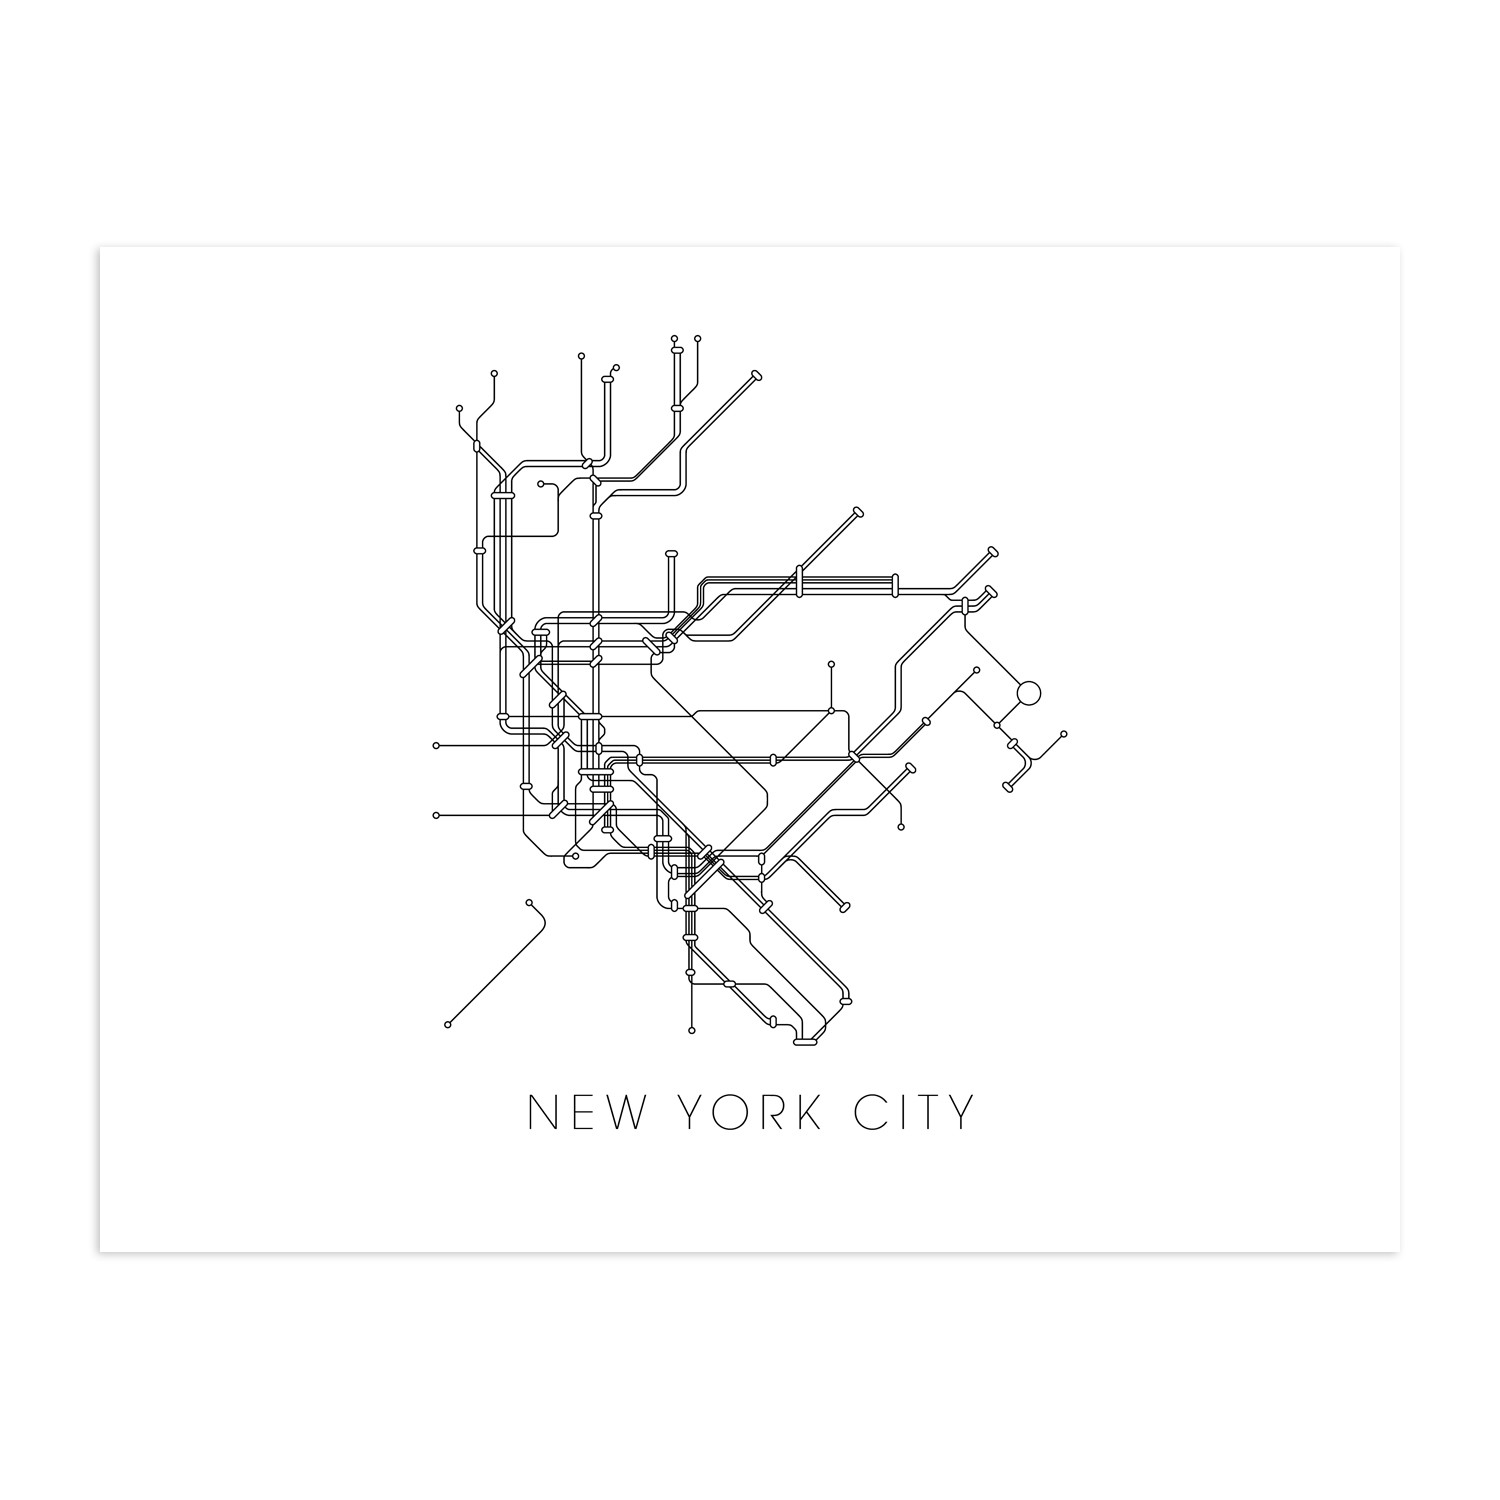 New York Subway Map To Print.New York Subway Map 13 X 19 Print Metromaps Touch Of Modern